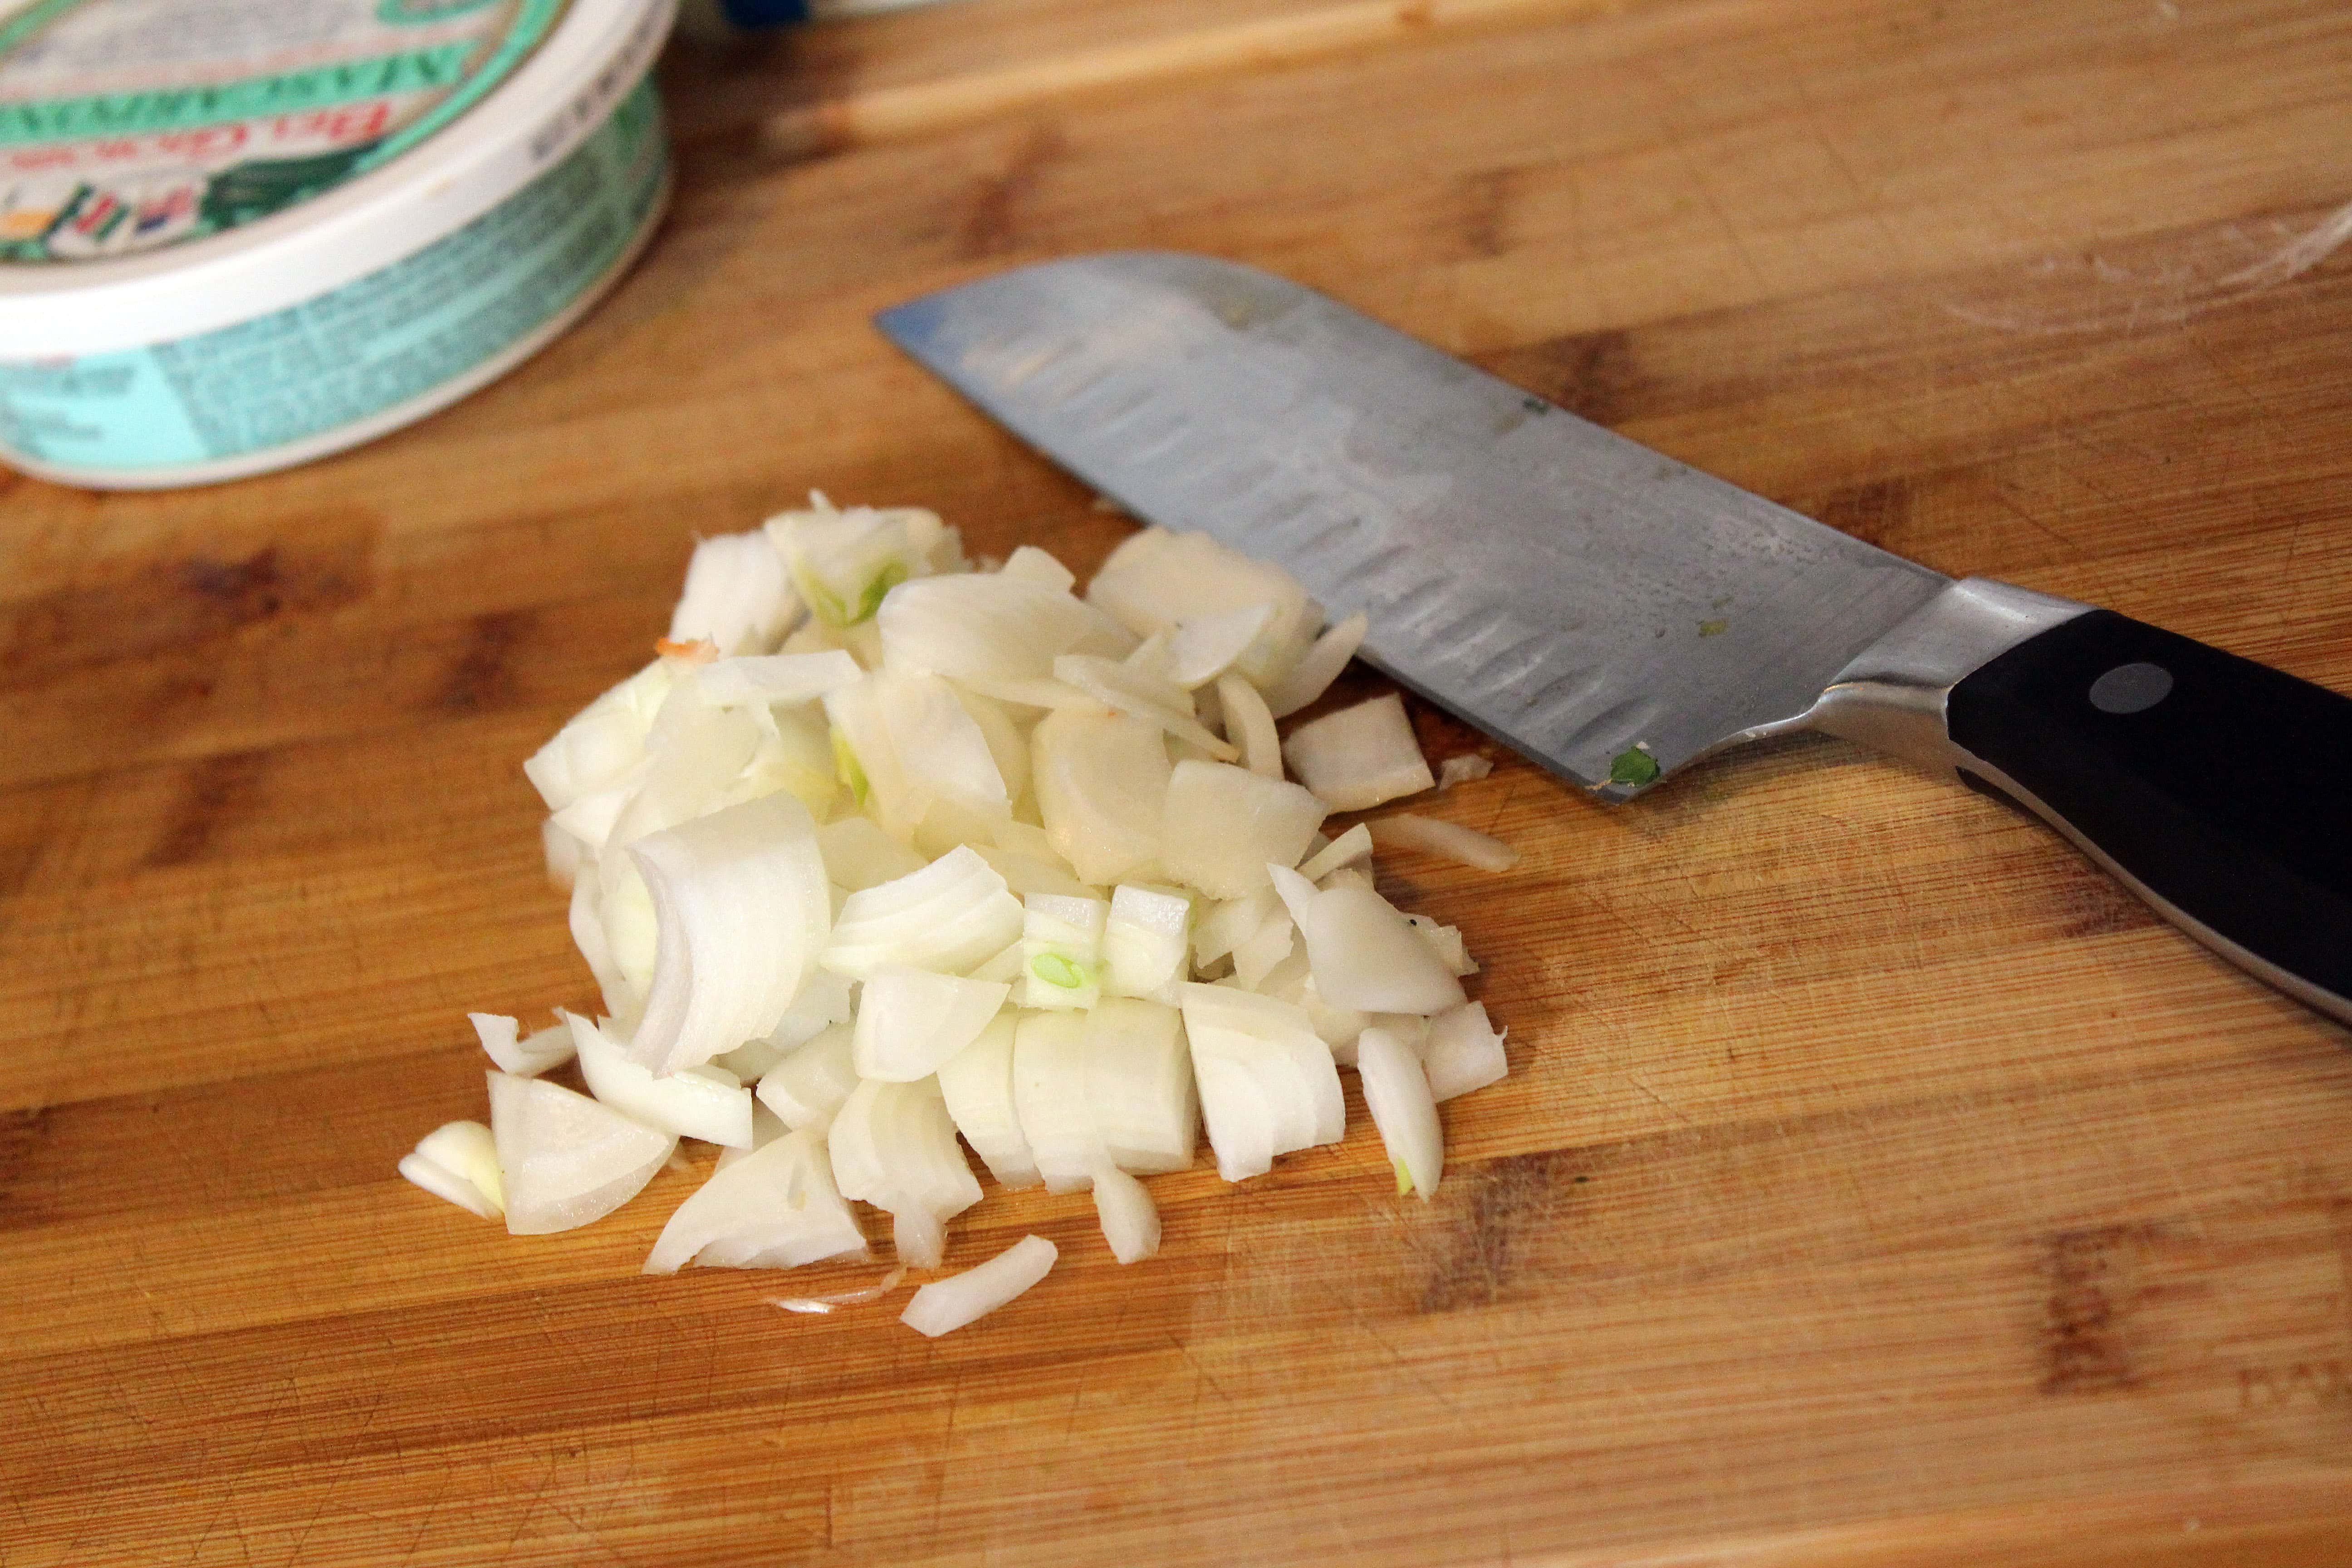 Chop up onion